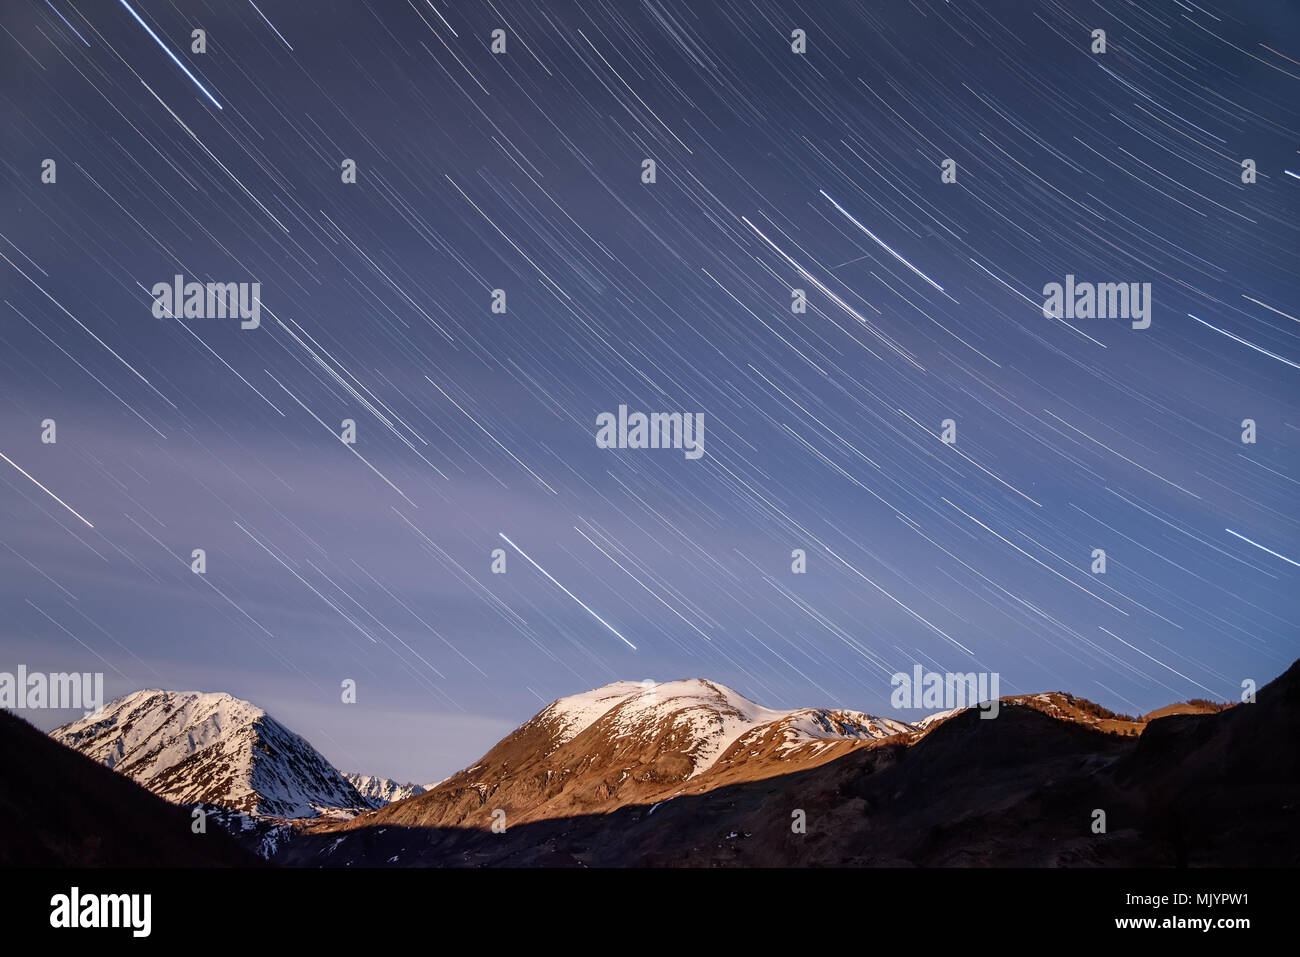 Beautiful Traces Of Stars In The Form Tracks And Blurred Clouds On Blue Night